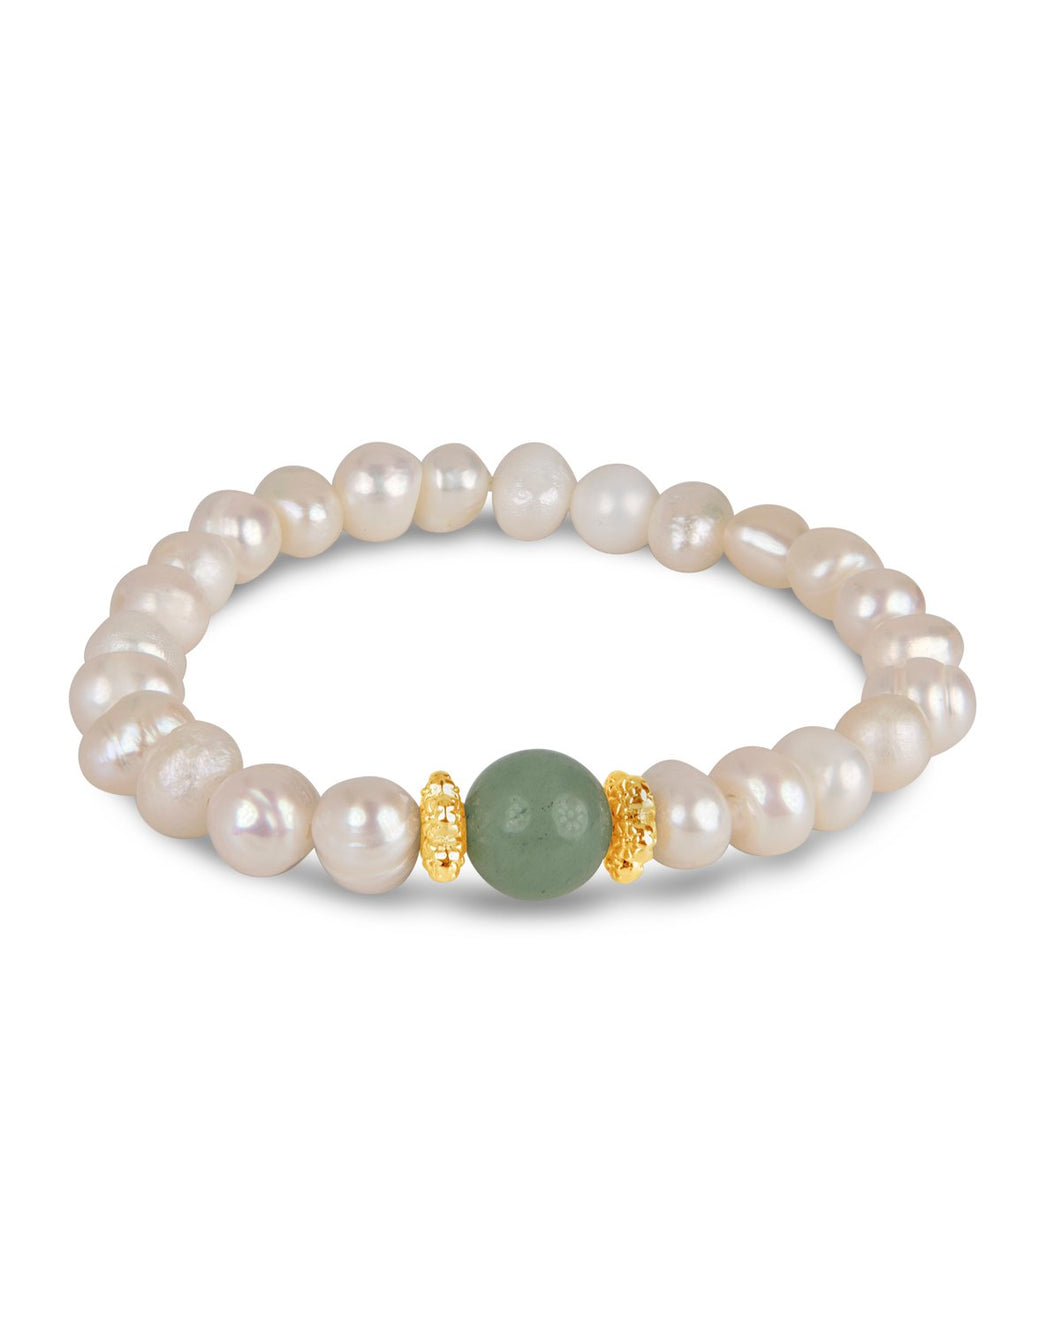 Pearl, Gold, and Aventurine Bracelet